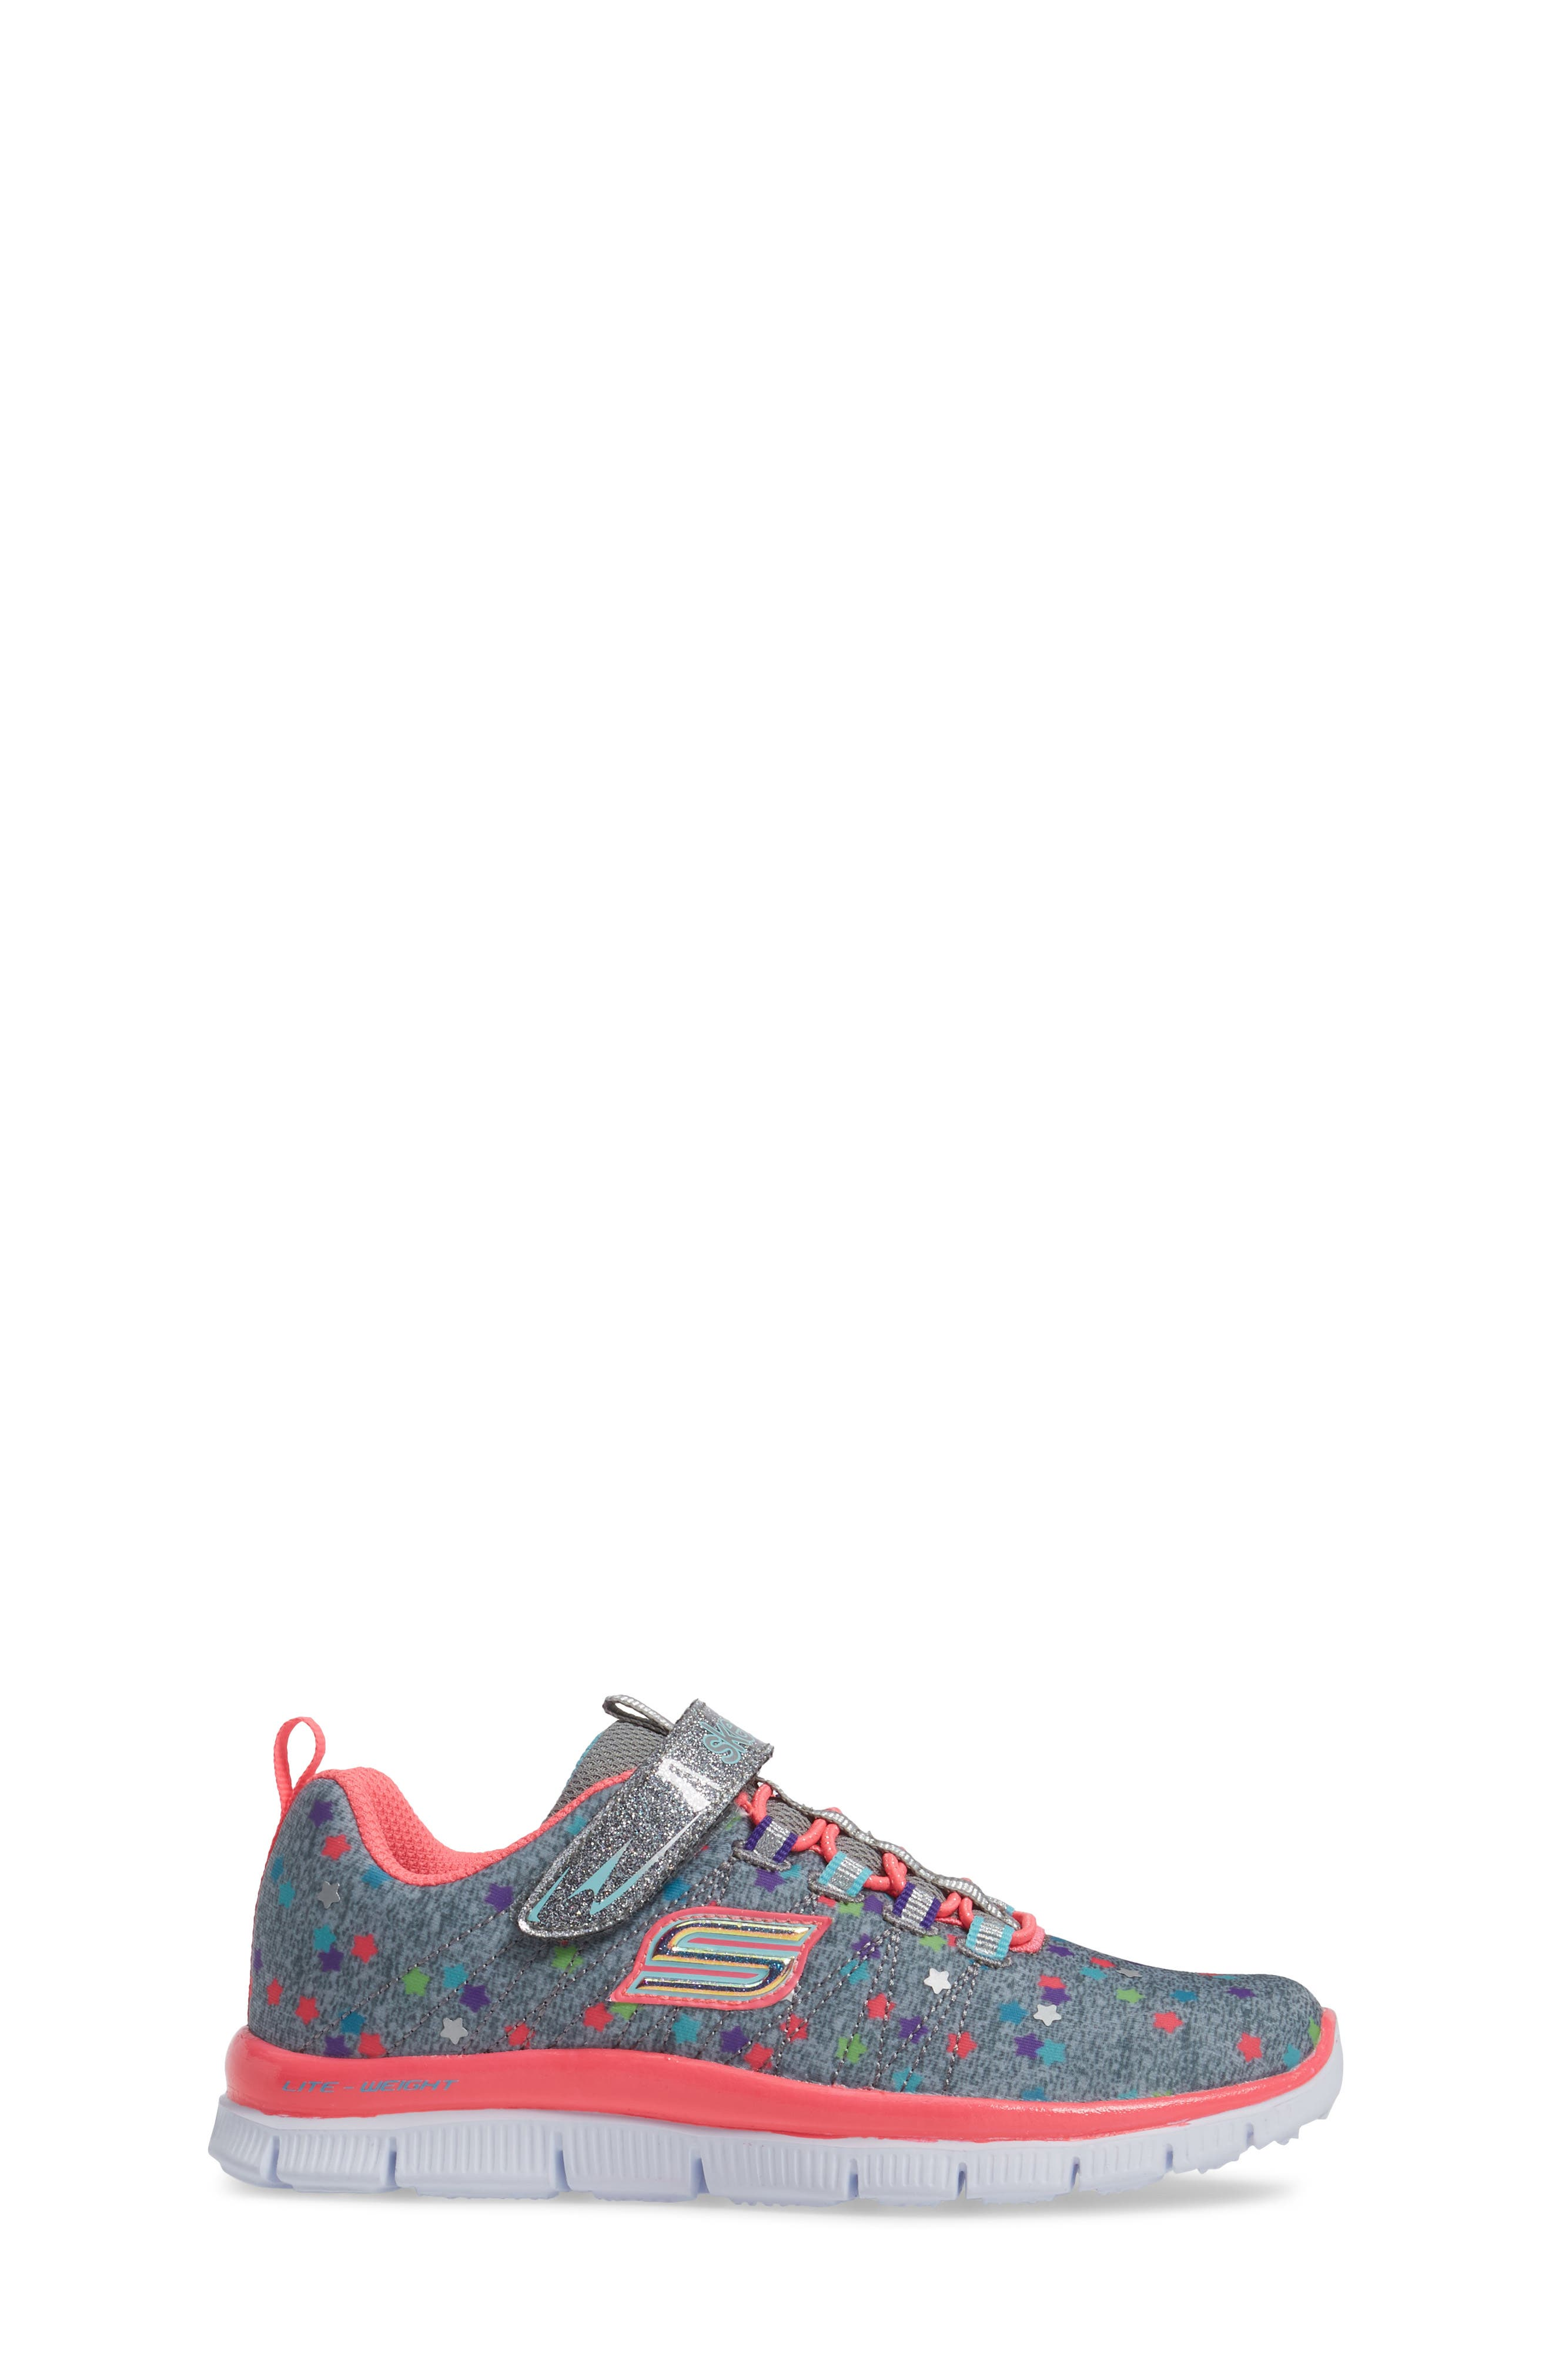 Skech Appeal Star Spirit Sneaker,                             Alternate thumbnail 3, color,                             Grey/ Multi